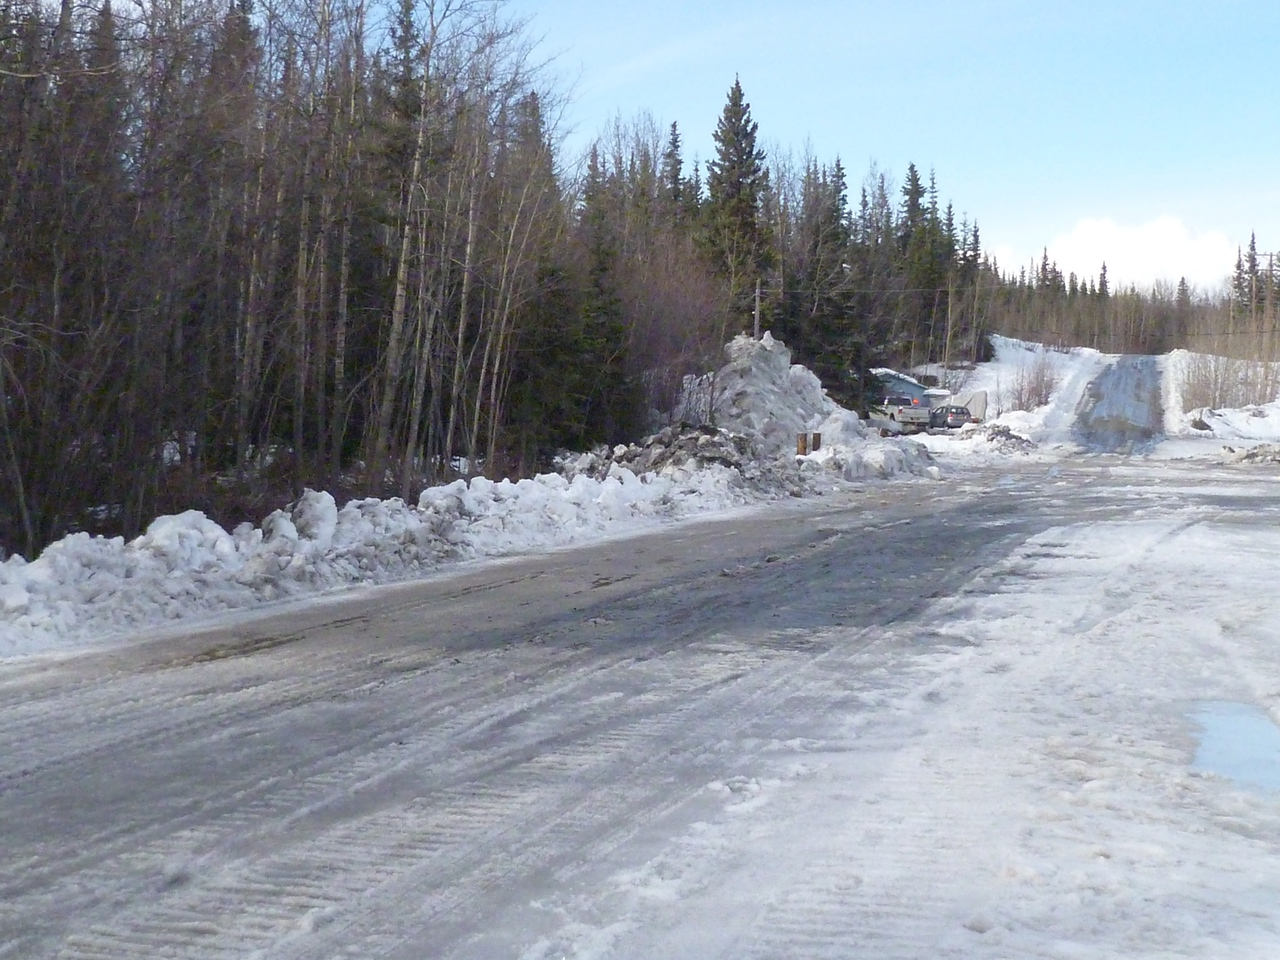 One of the side streets in Glennallen, where a bulldozer has been used to scrape away the softened snowpack and pile it to the side, where it will melt and soon create streams crossing the road.